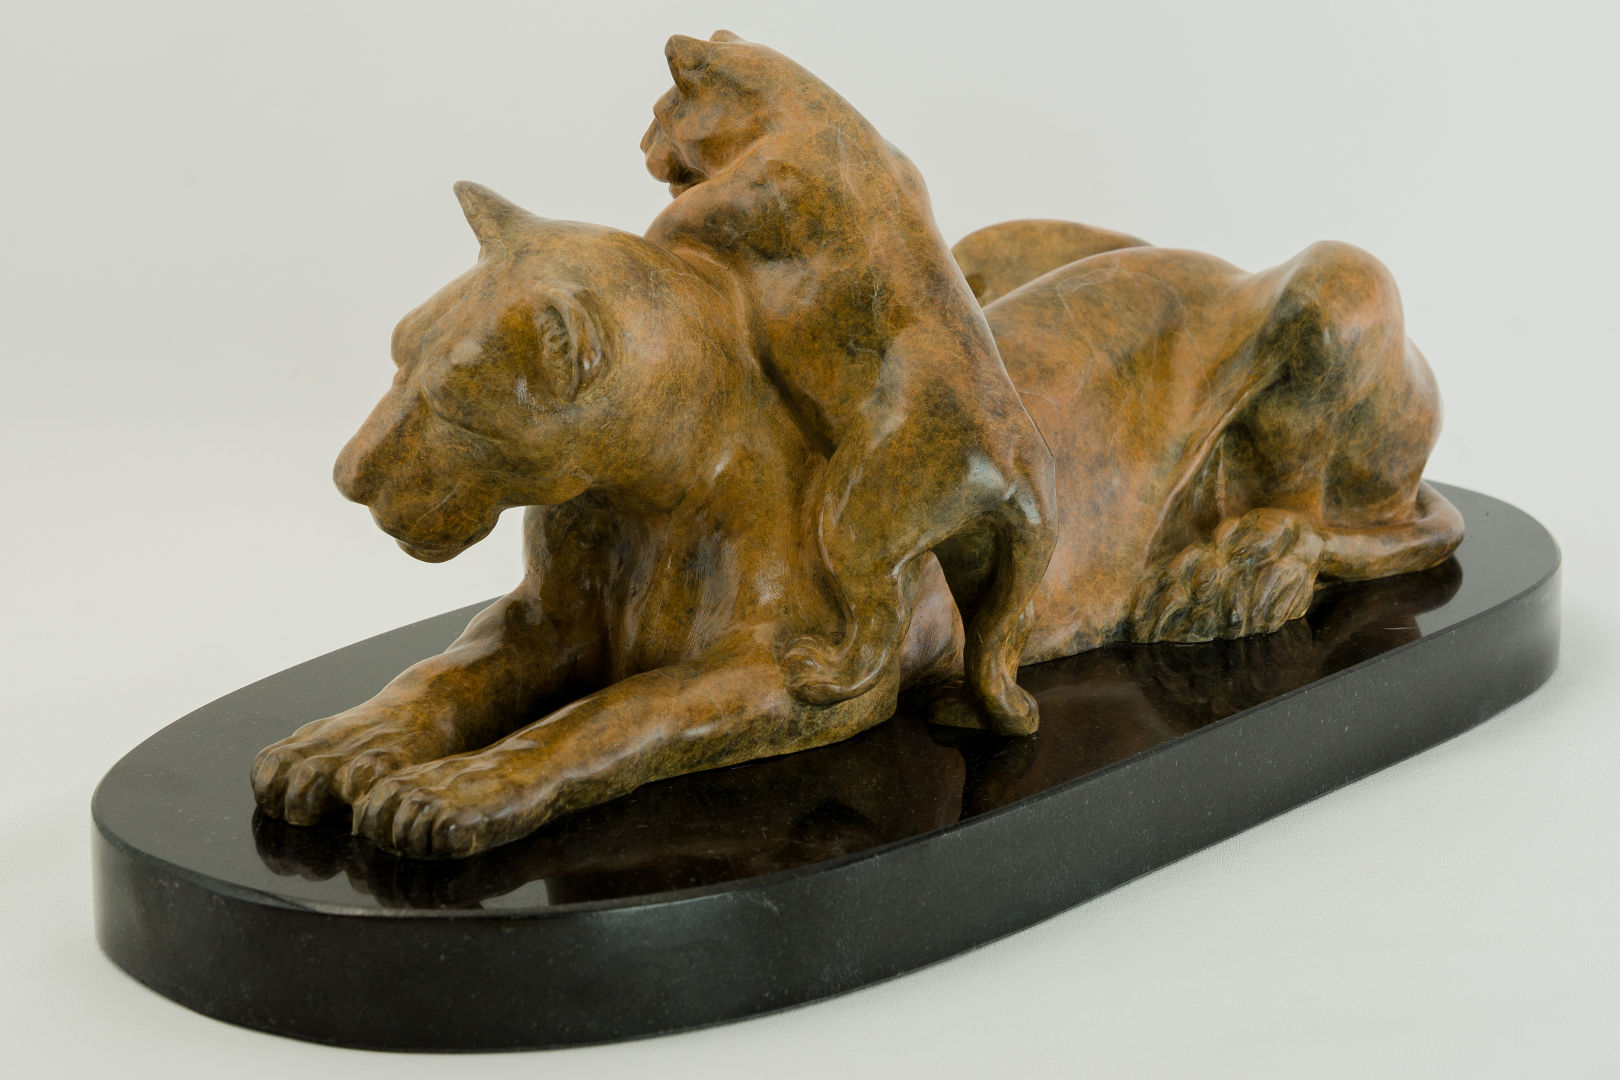 Lioness_and_Cub_bronze_sculpture_by_Terrence_Robertson-Fall-3.jpg